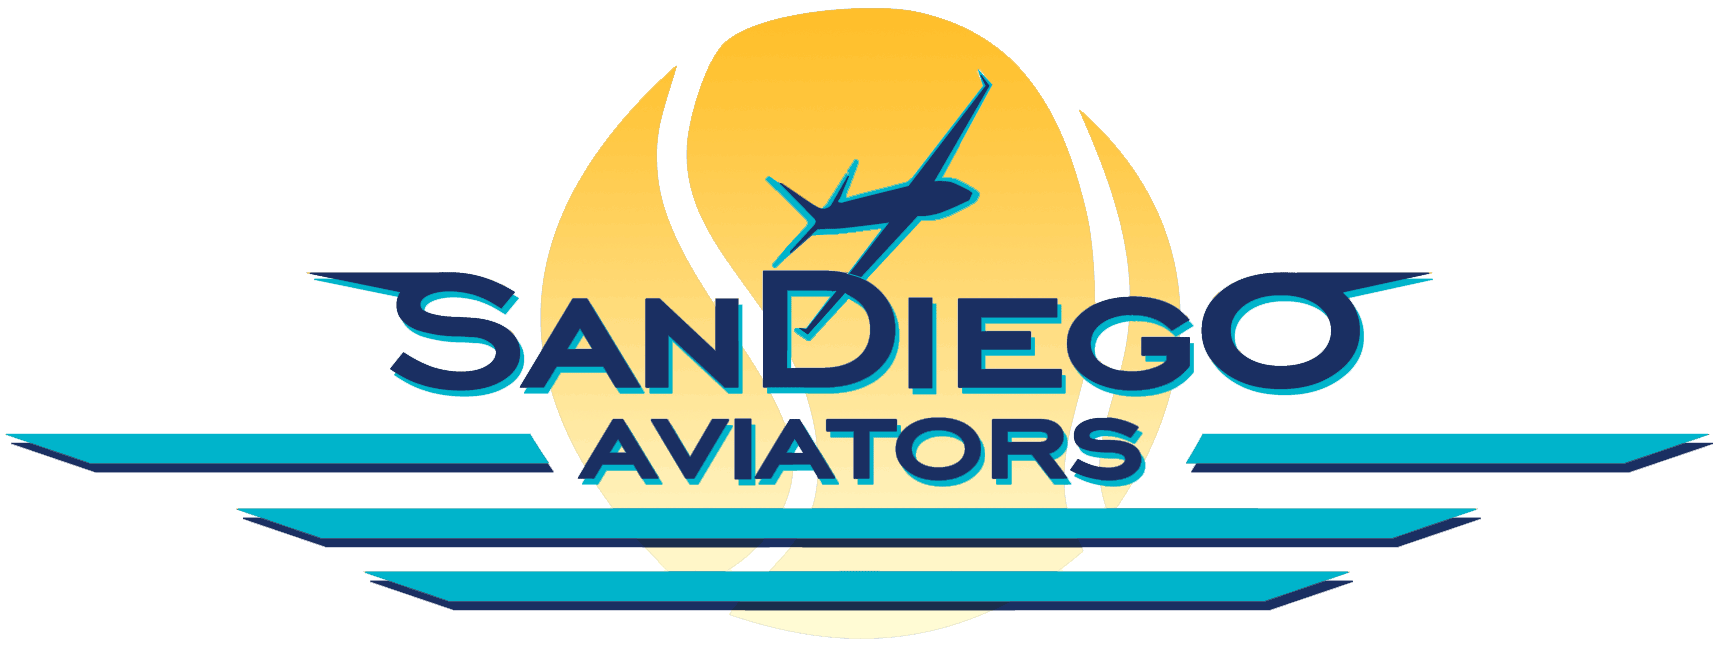 San Diego Aviators Logo Primary Logo (2014-Pres) - An airplane flying in front of a tennis ball sunset SportsLogos.Net